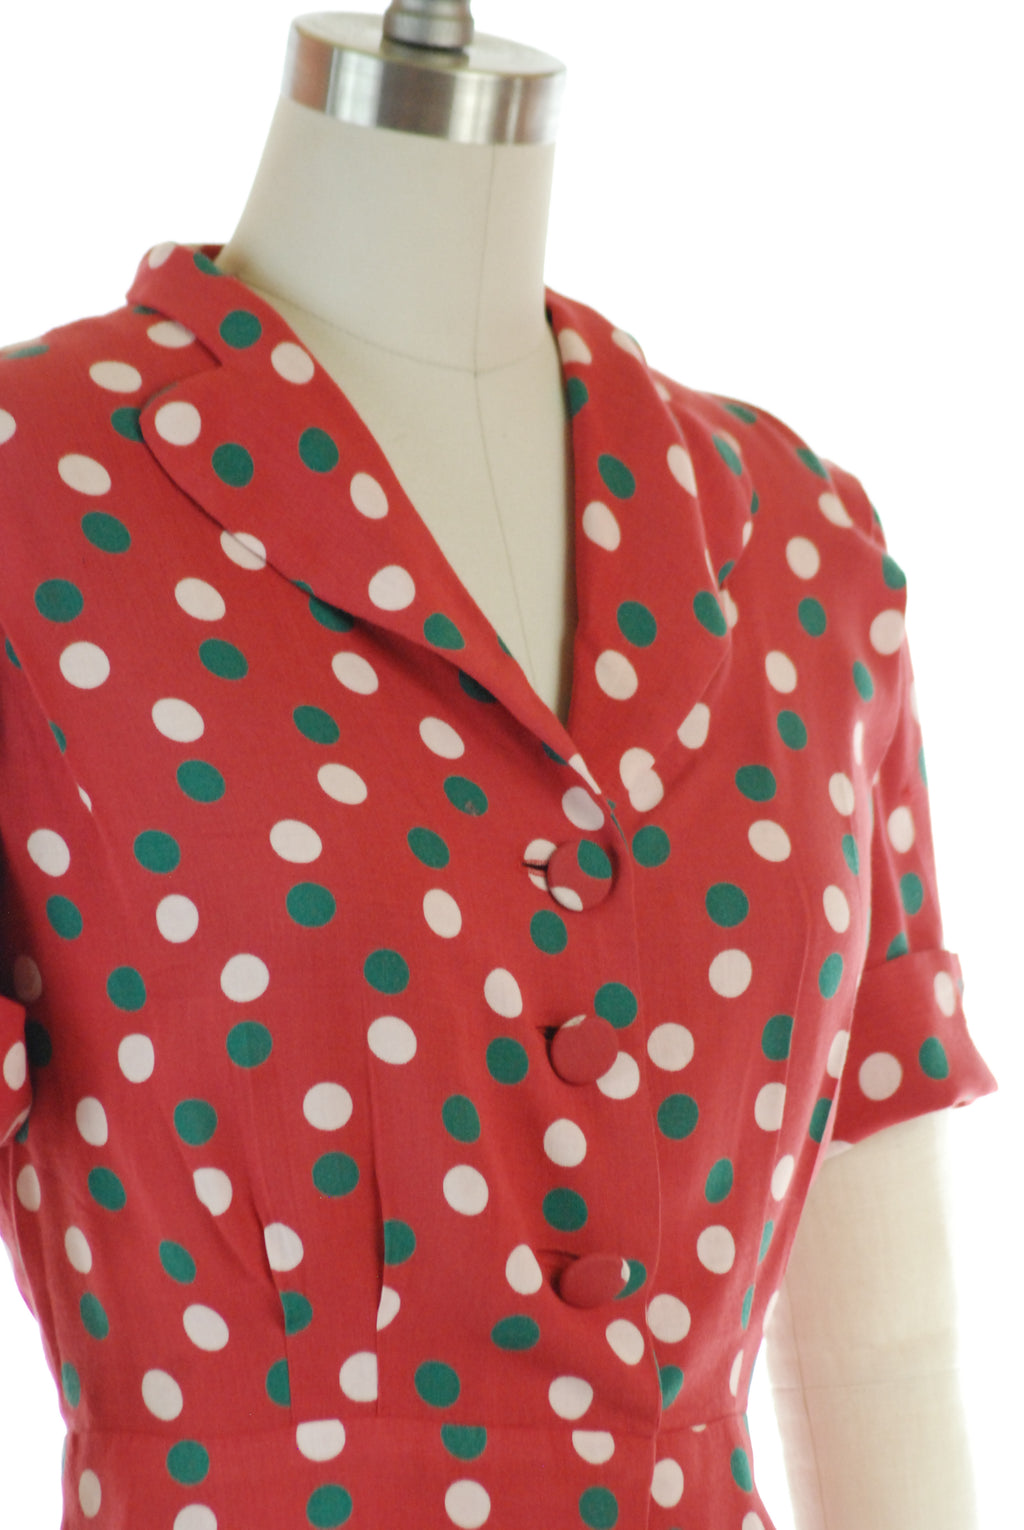 Cute Late 1940s Button Up Blouse in Red with Forest Green and White Polka Dots